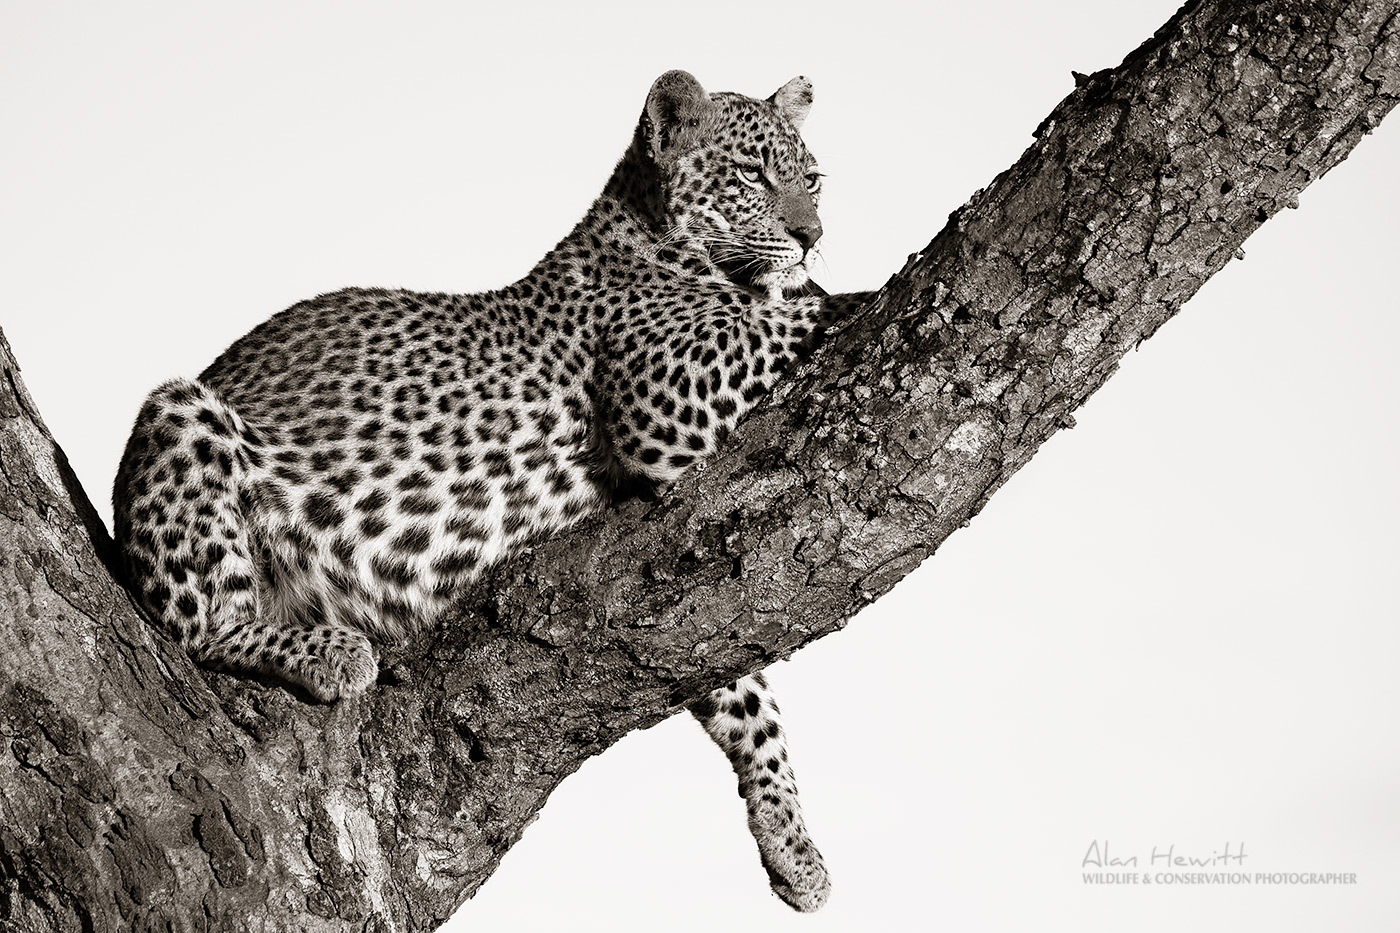 Leopard, Timbavati Wildlife Photography Safari Alan Hewitt Photography